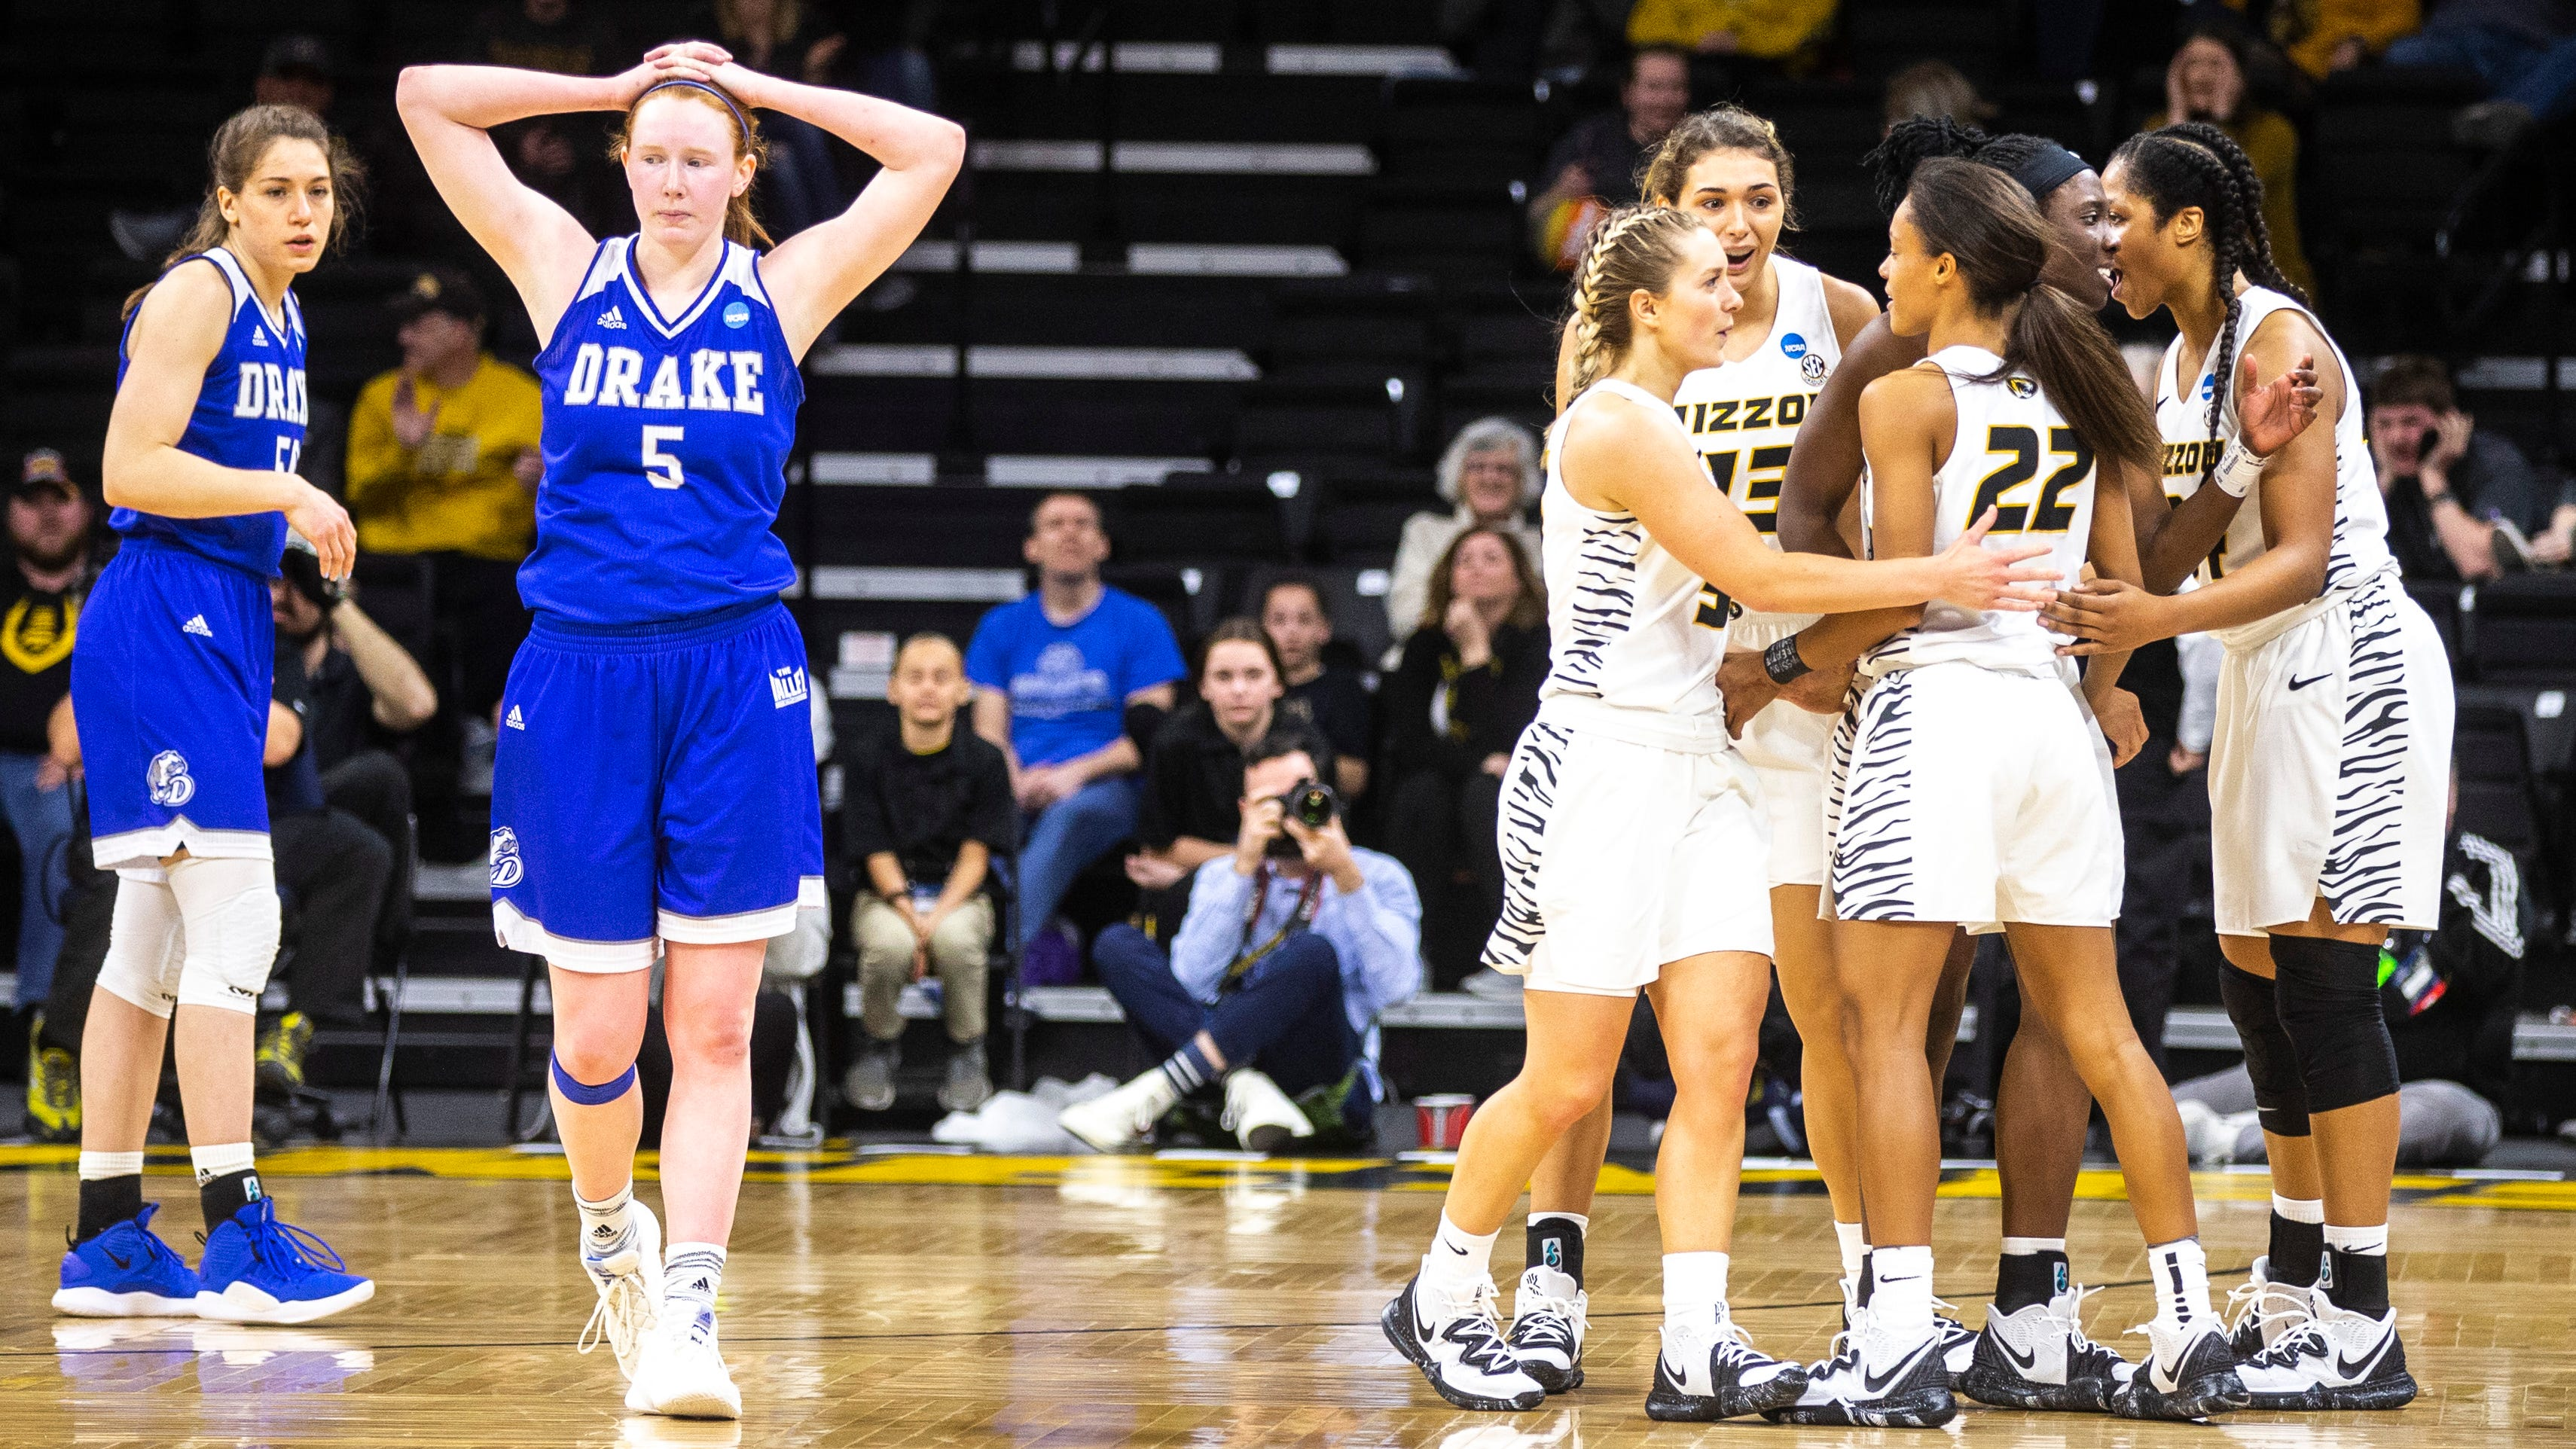 'This one really hurts': Drake falls just short against Missouri in NCAA Tournament opener